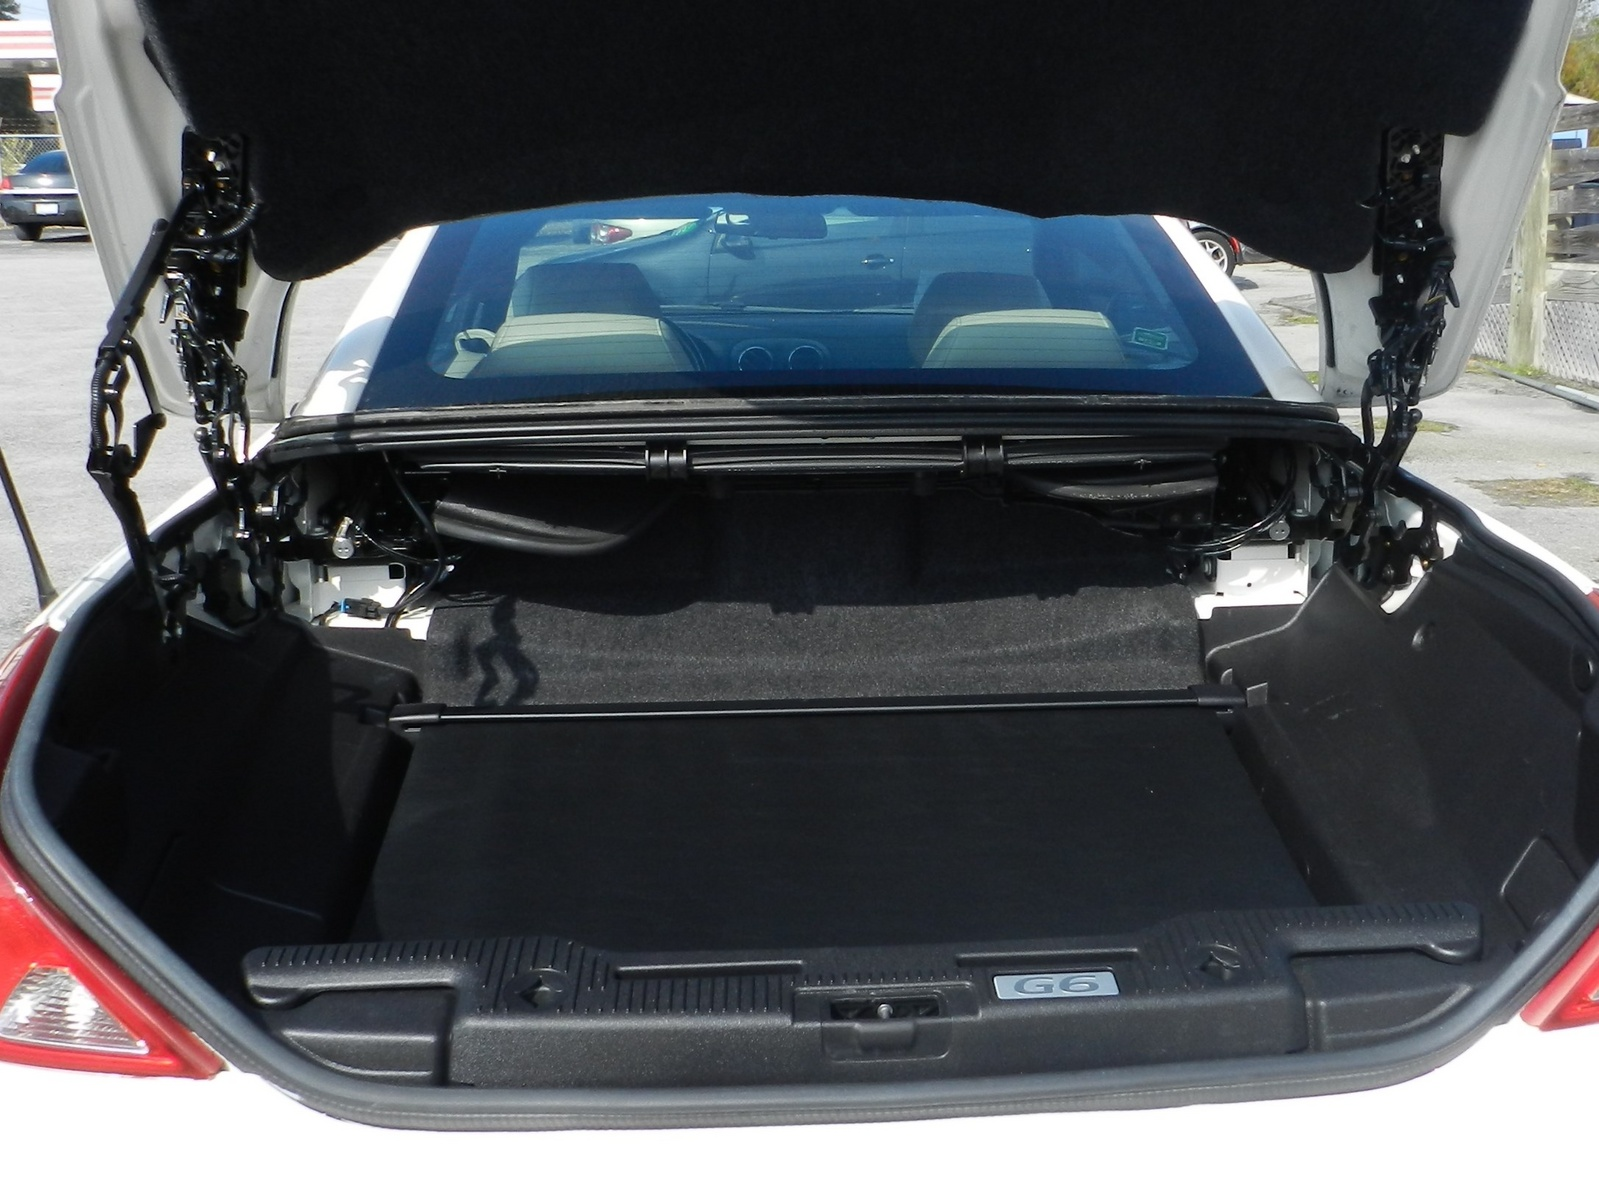 pontiac g6 essay Find the best pontiac g6 for sale near you every used car for sale comes with a free carfax report we have 514 pontiac g6 vehicles for sale that are reported accident free, 116 1-owner cars, and 520 personal use cars.